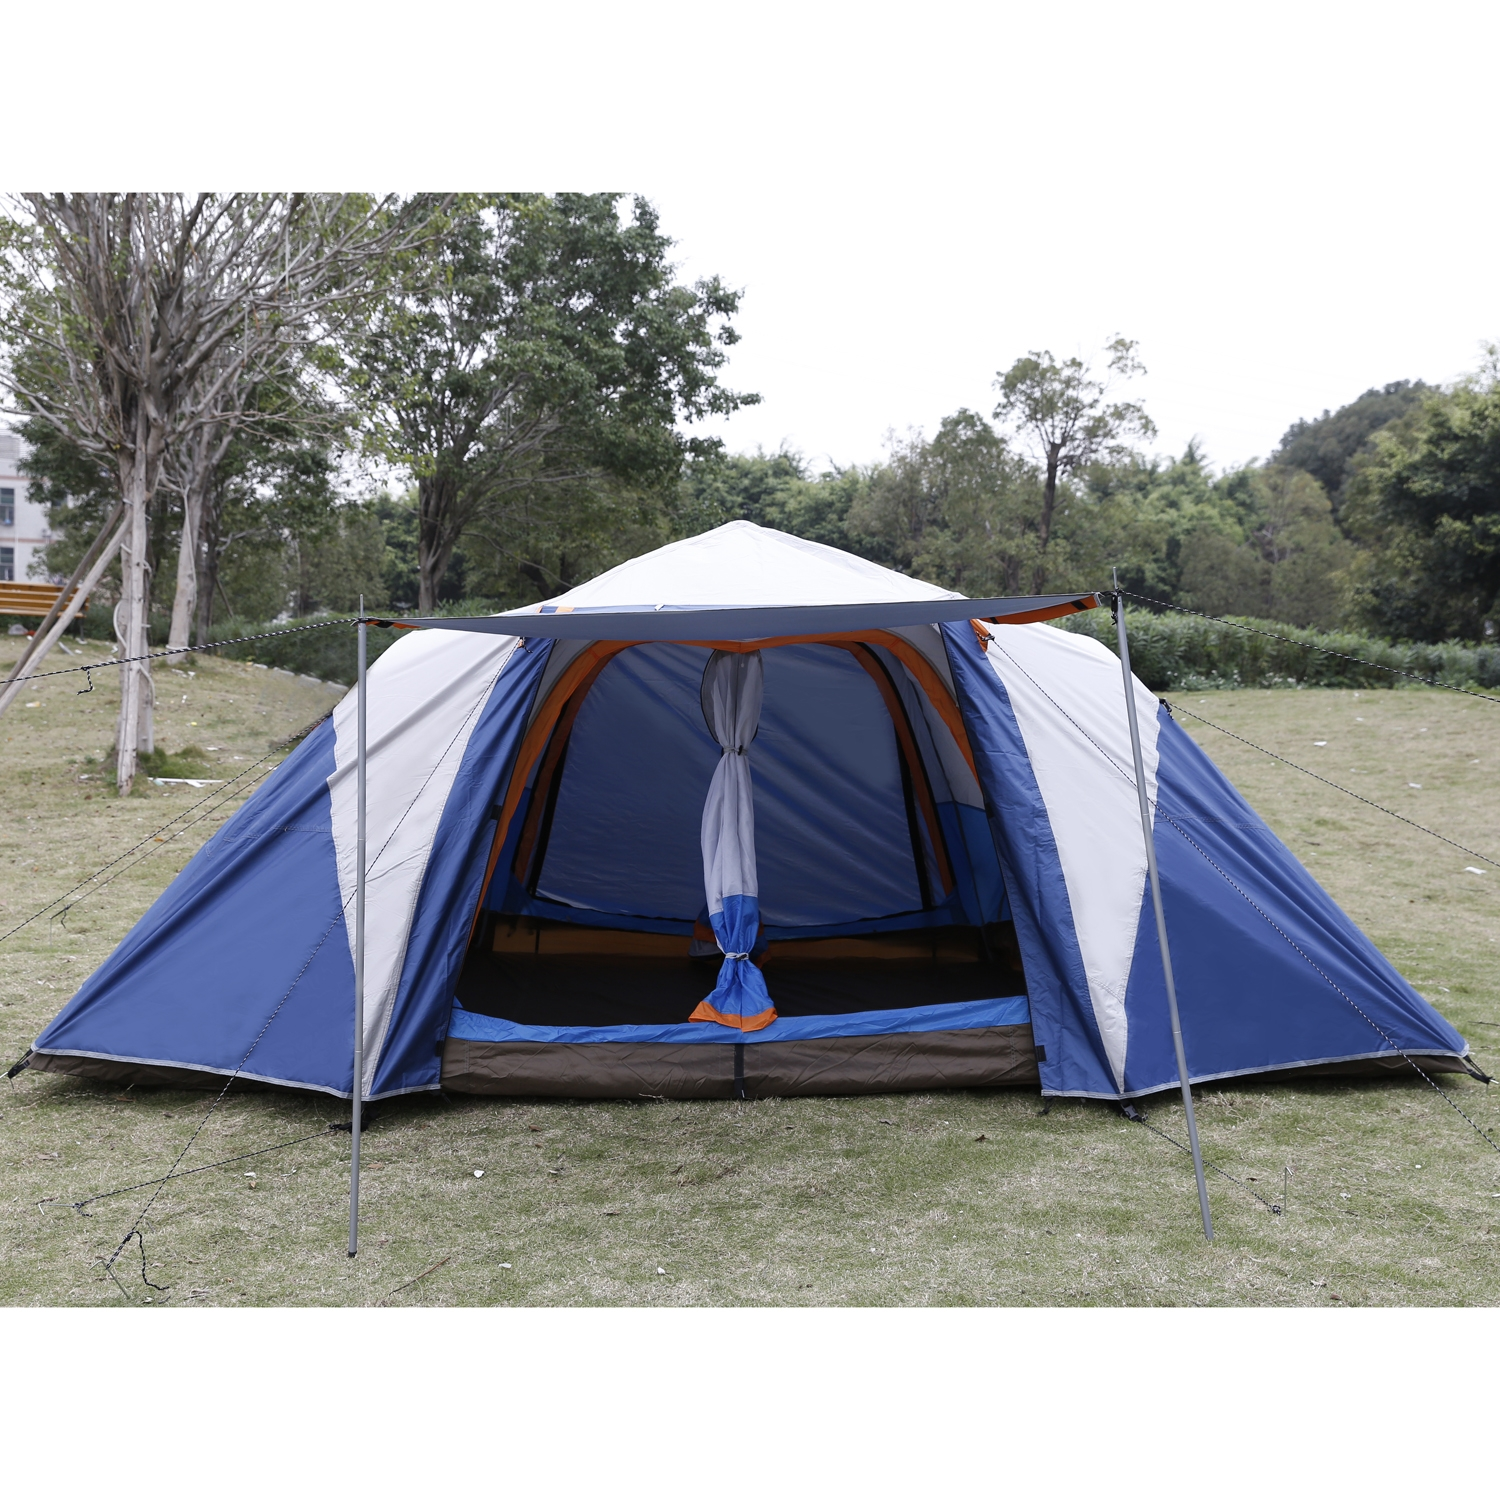 Waterproof 210D 6-8 Person Dome Tent 2 rooms C&ing Automatic Instant Hiking Tent with  sc 1 st  Walmart & Waterproof 210D 6-8 Person Dome Tent 2 rooms Camping Automatic ...